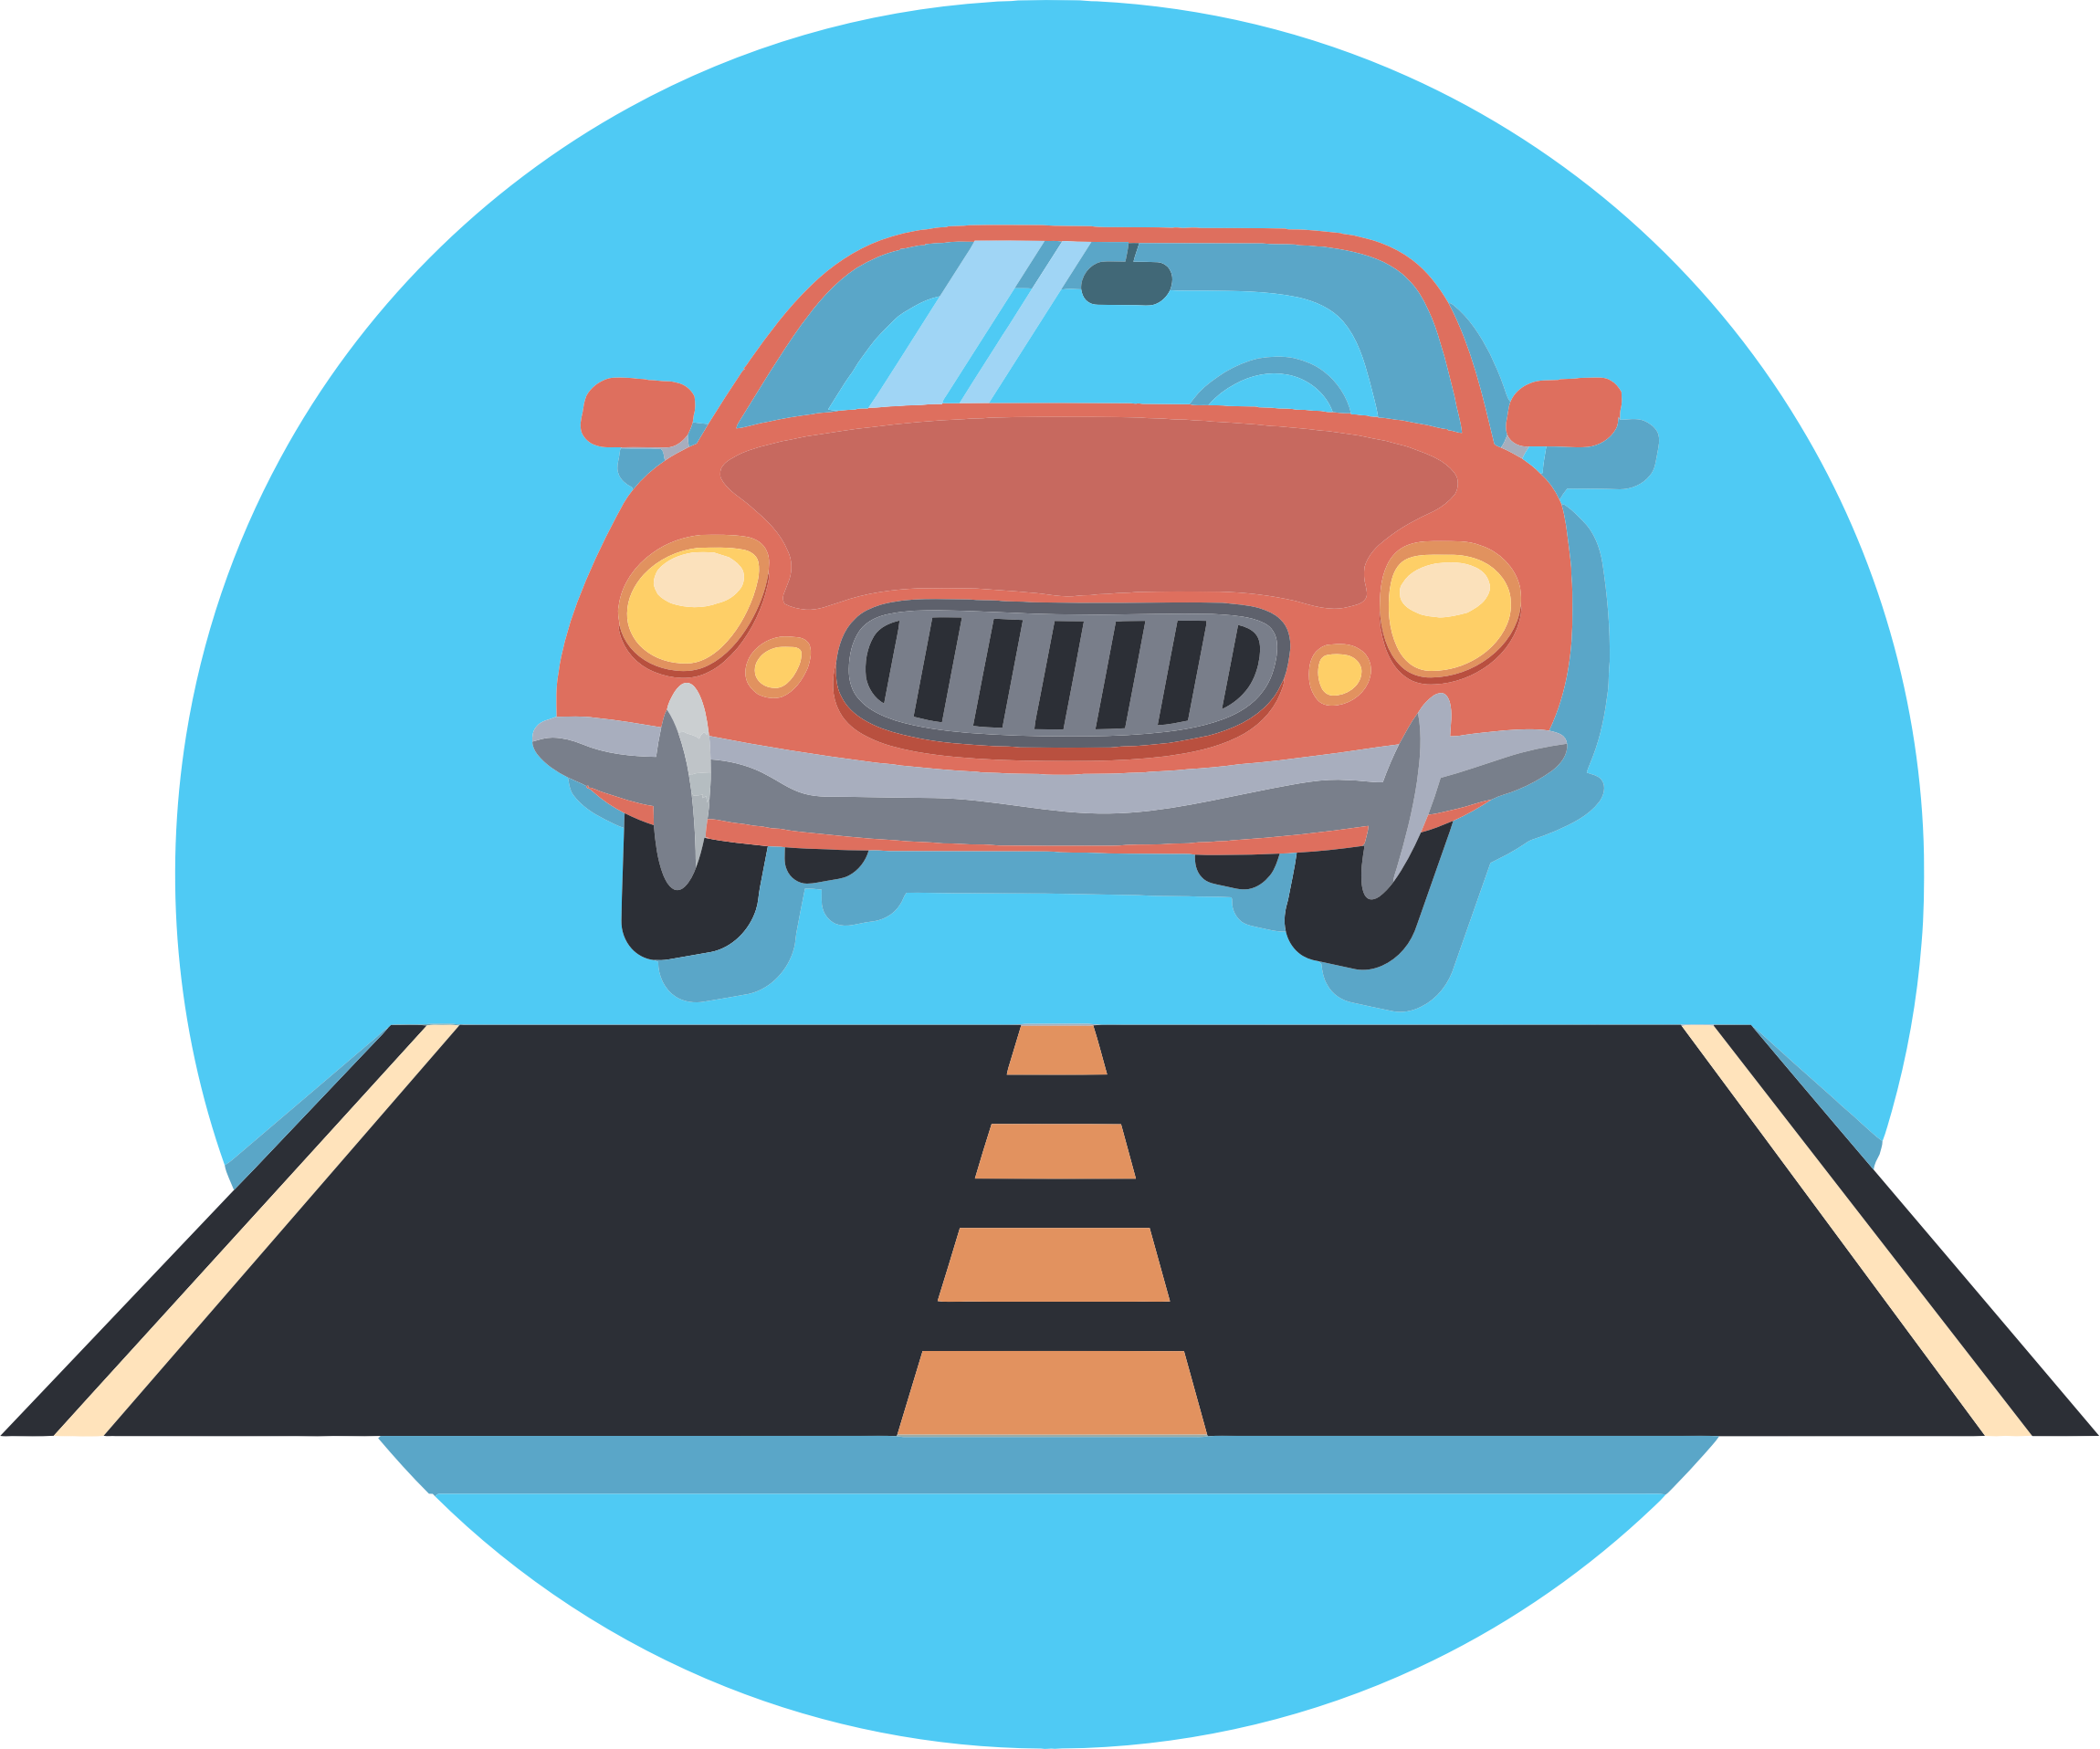 Pathway clipart lane. Car and road icon